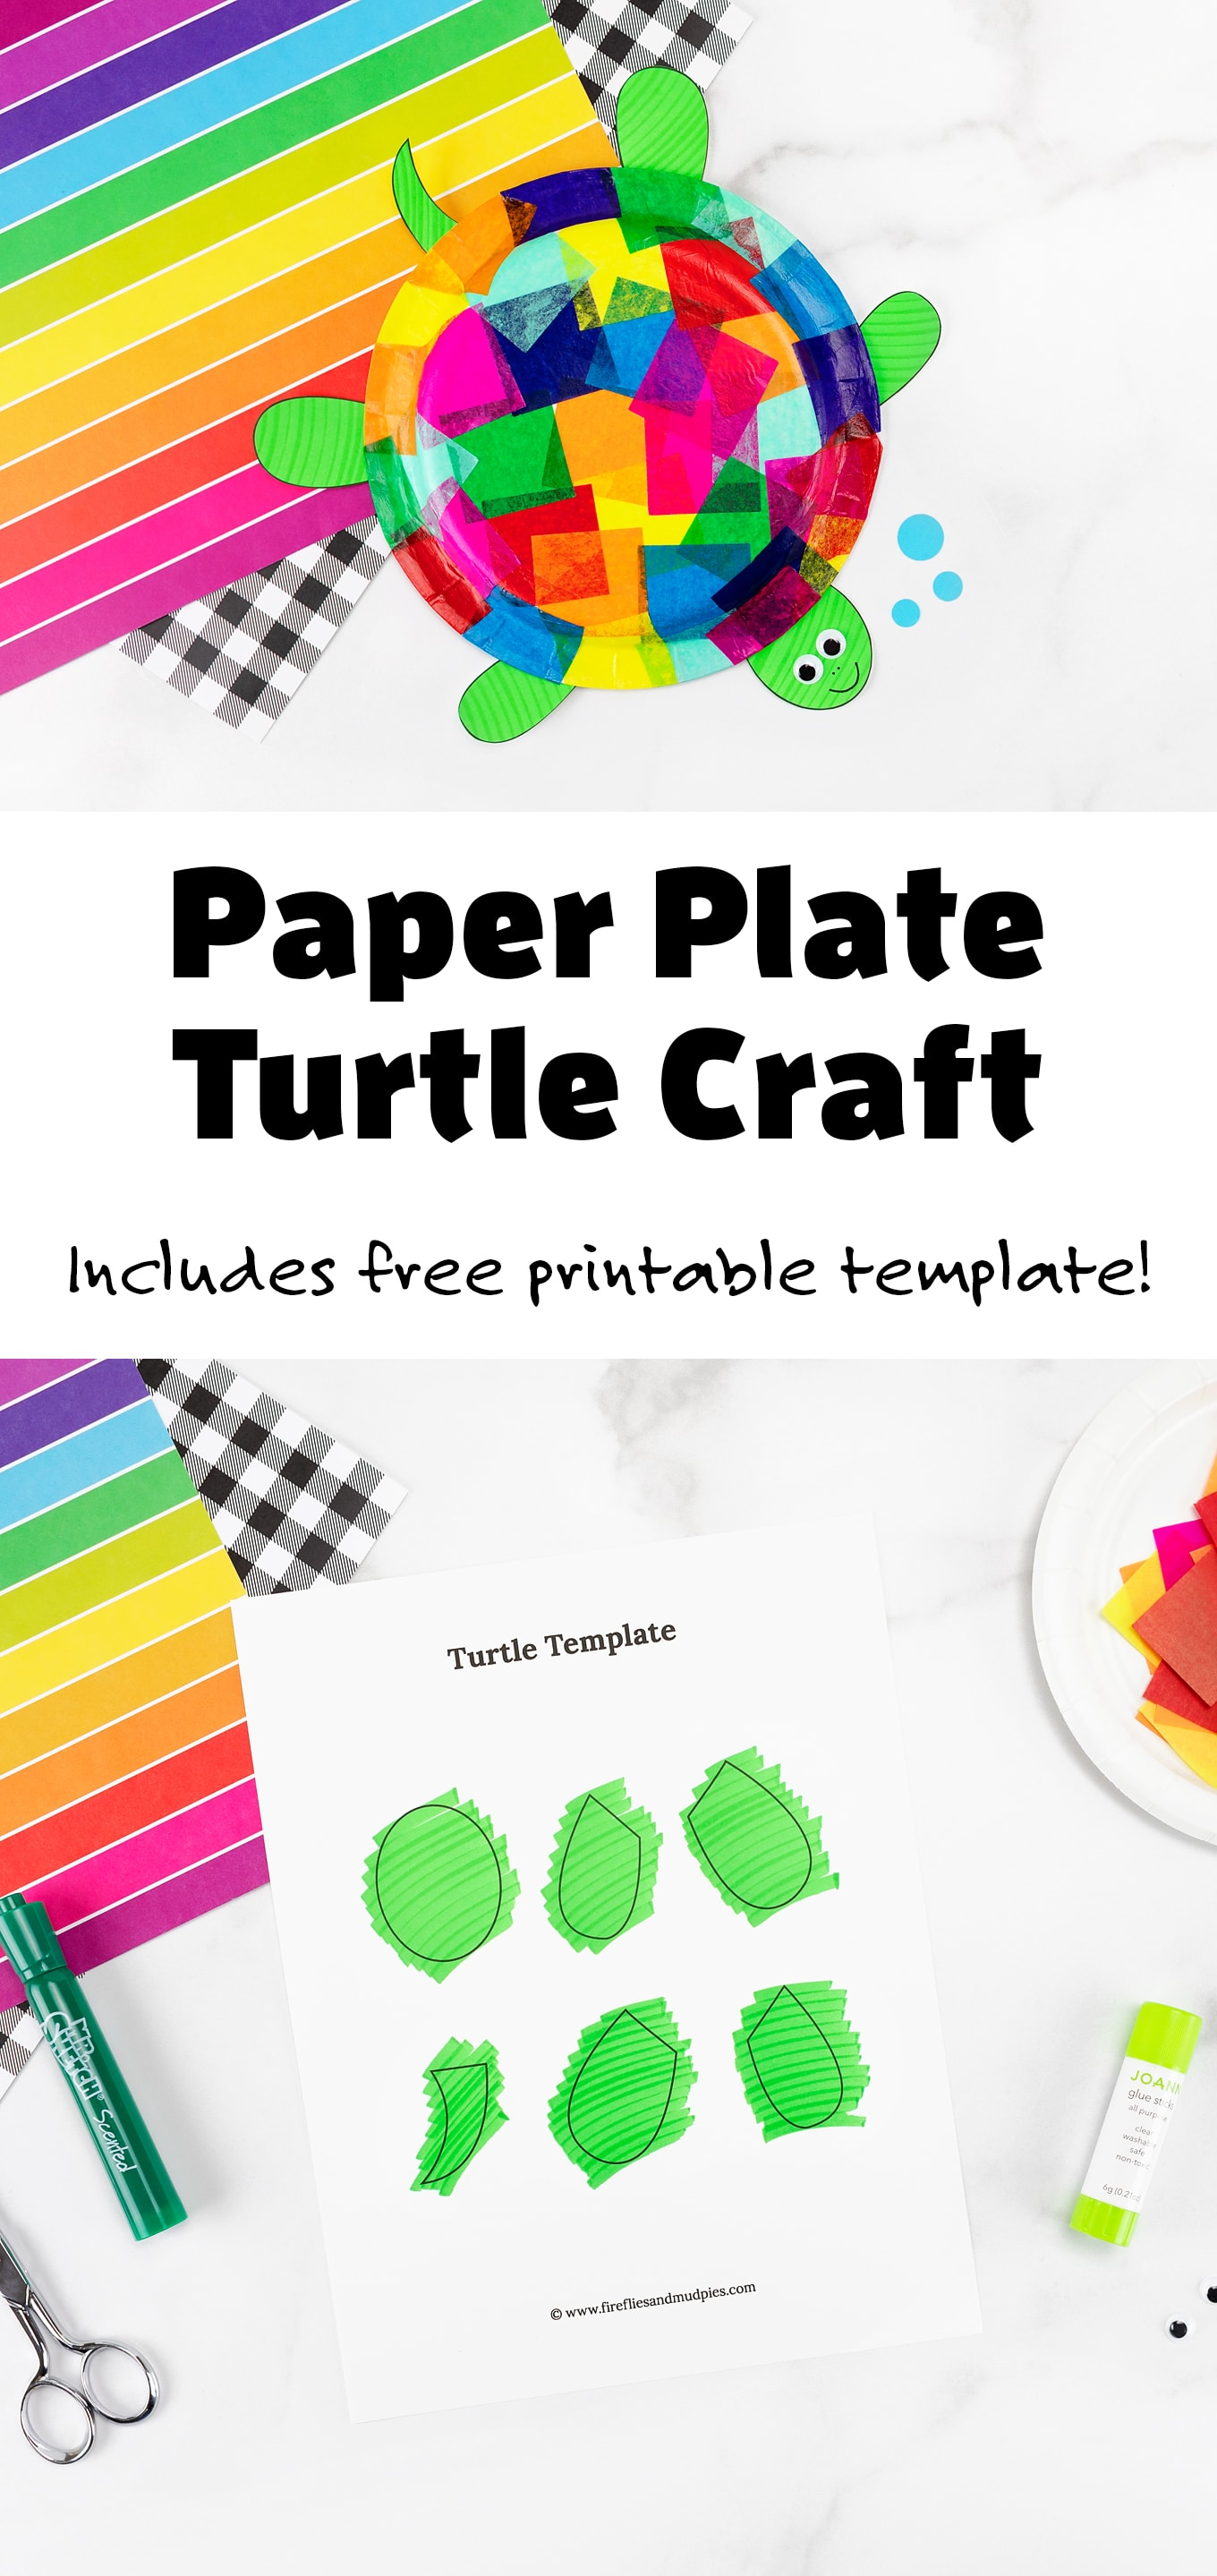 This easy and fun Tissue Paper and Paper Plate Turtle craft includes a free printable template, making it perfect for home, school, daycare, or camp. #turtlecrafts #paperplatecrafts #turtles #tissuepapercrafts #printablecrafts #preschoolcrafts #easycraftsforkids #turtlecraftideas #easyturtlecrafts via @firefliesandmudpies